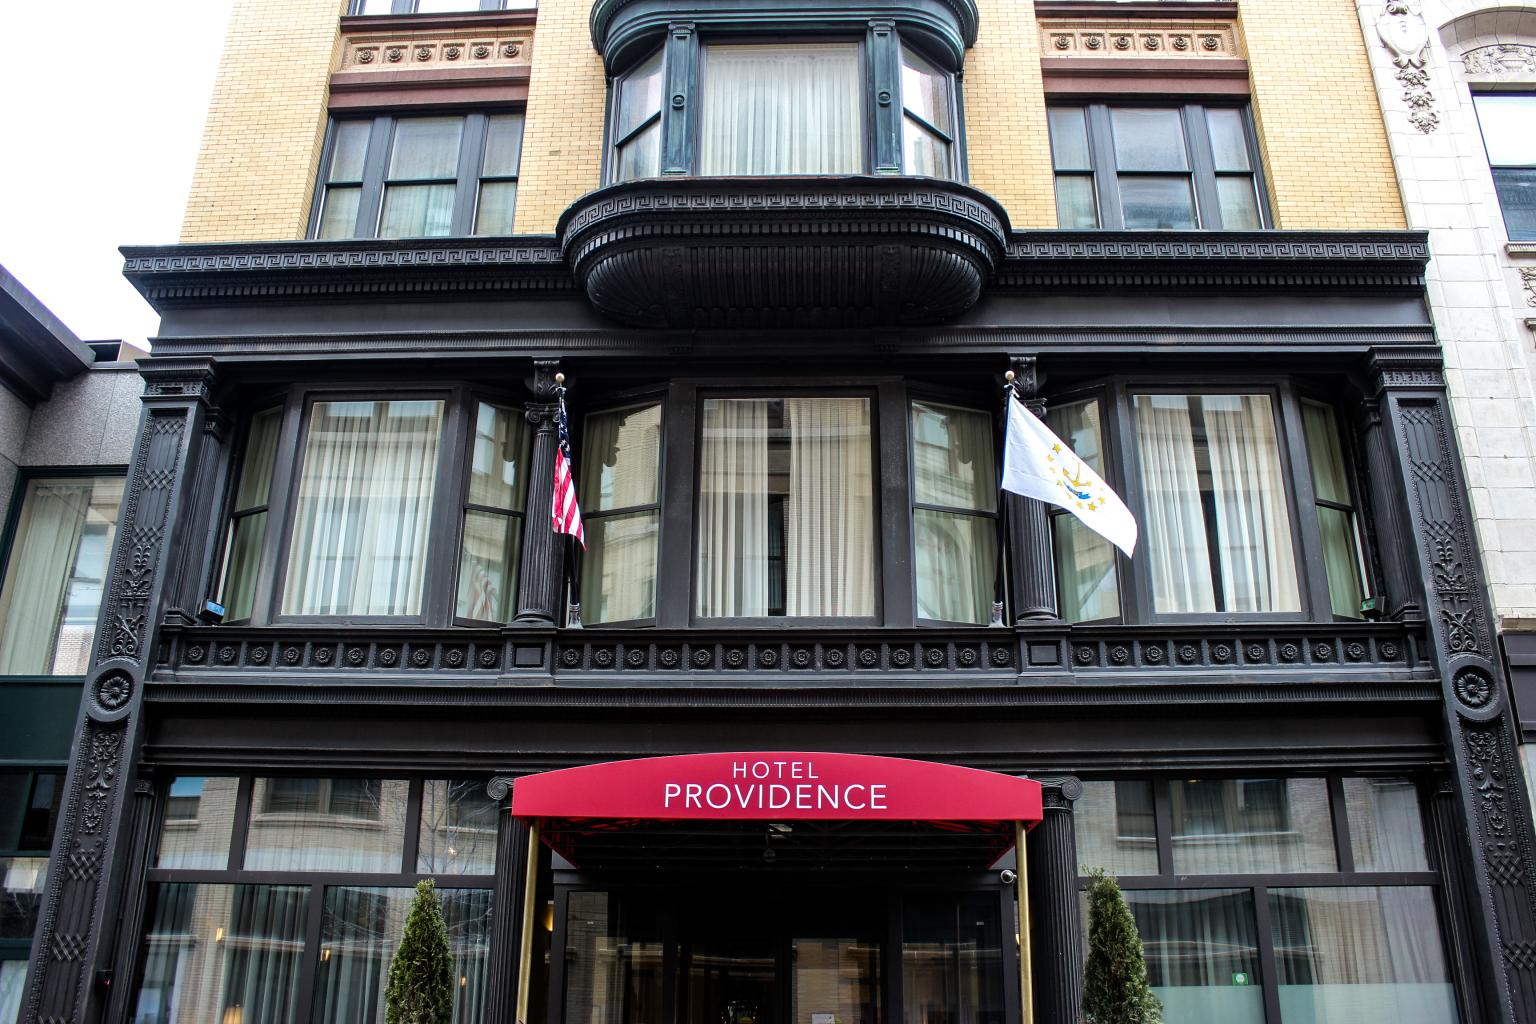 Hotel Providence - Exterior